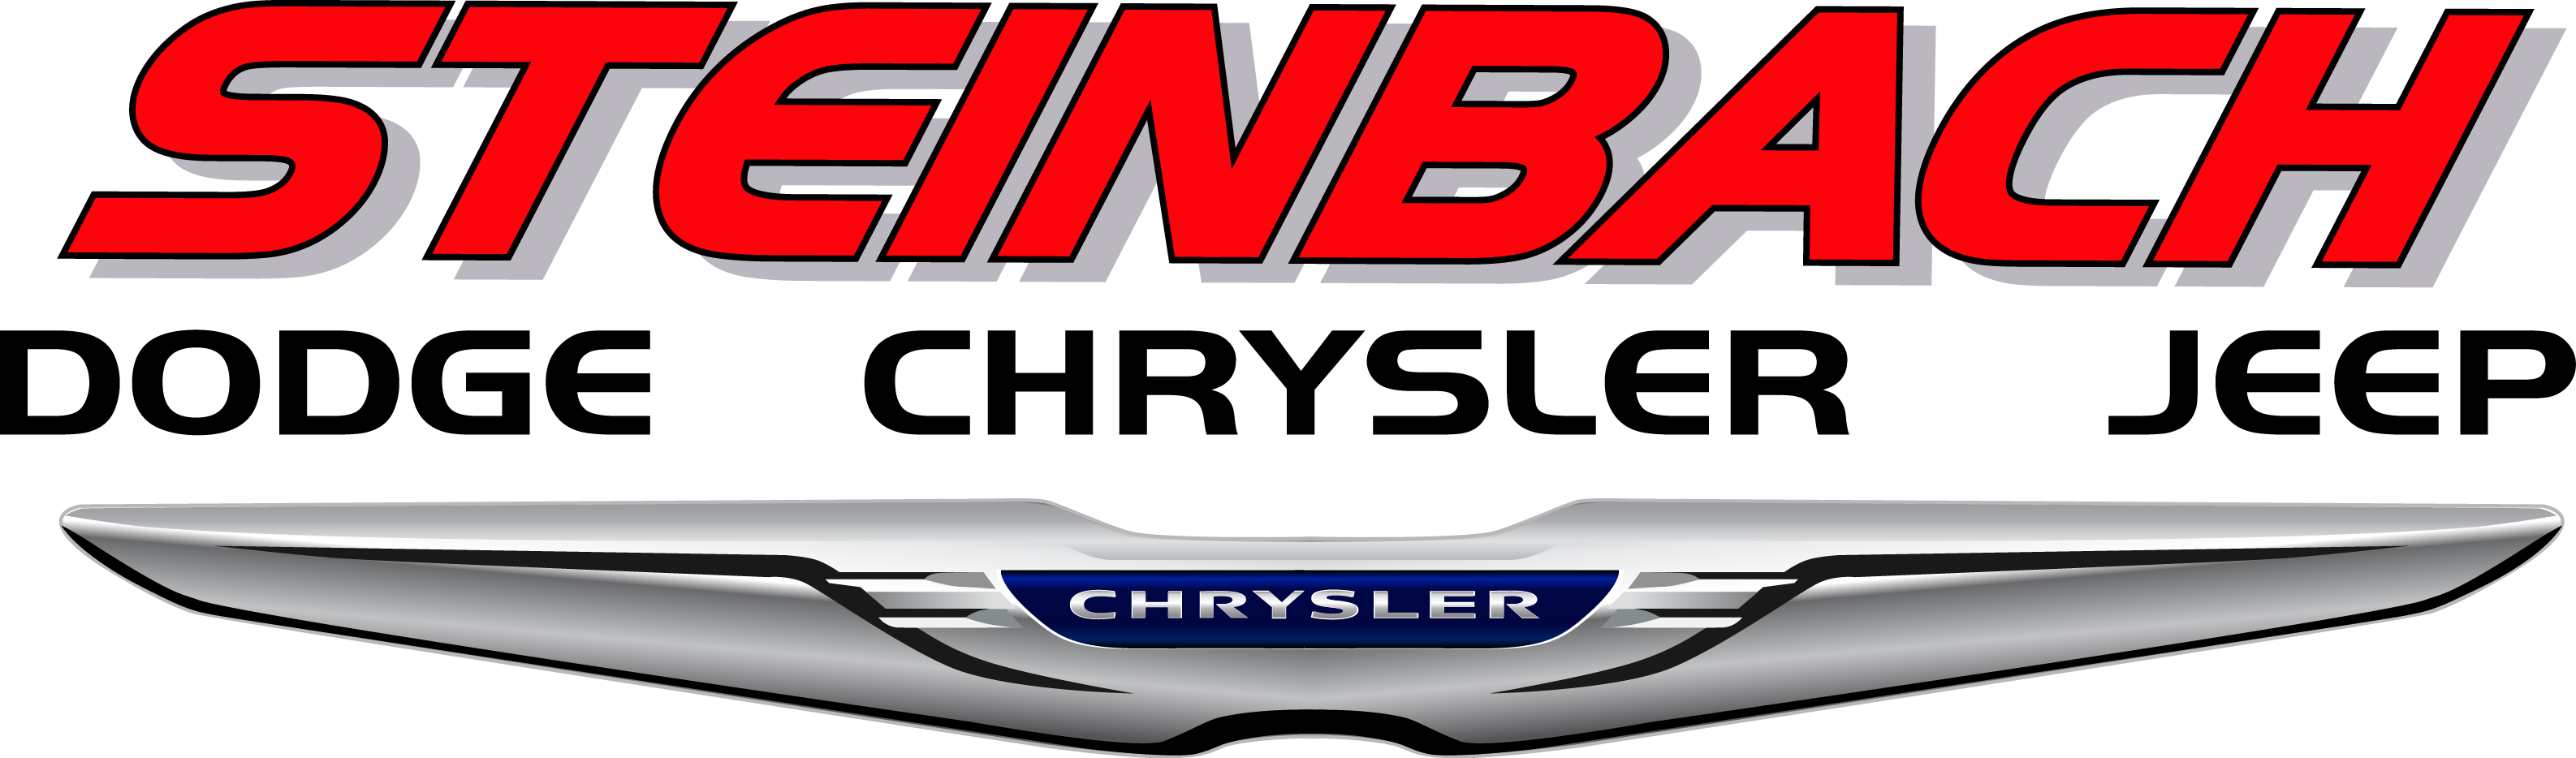 Steinbach Dodge Chrysler logo